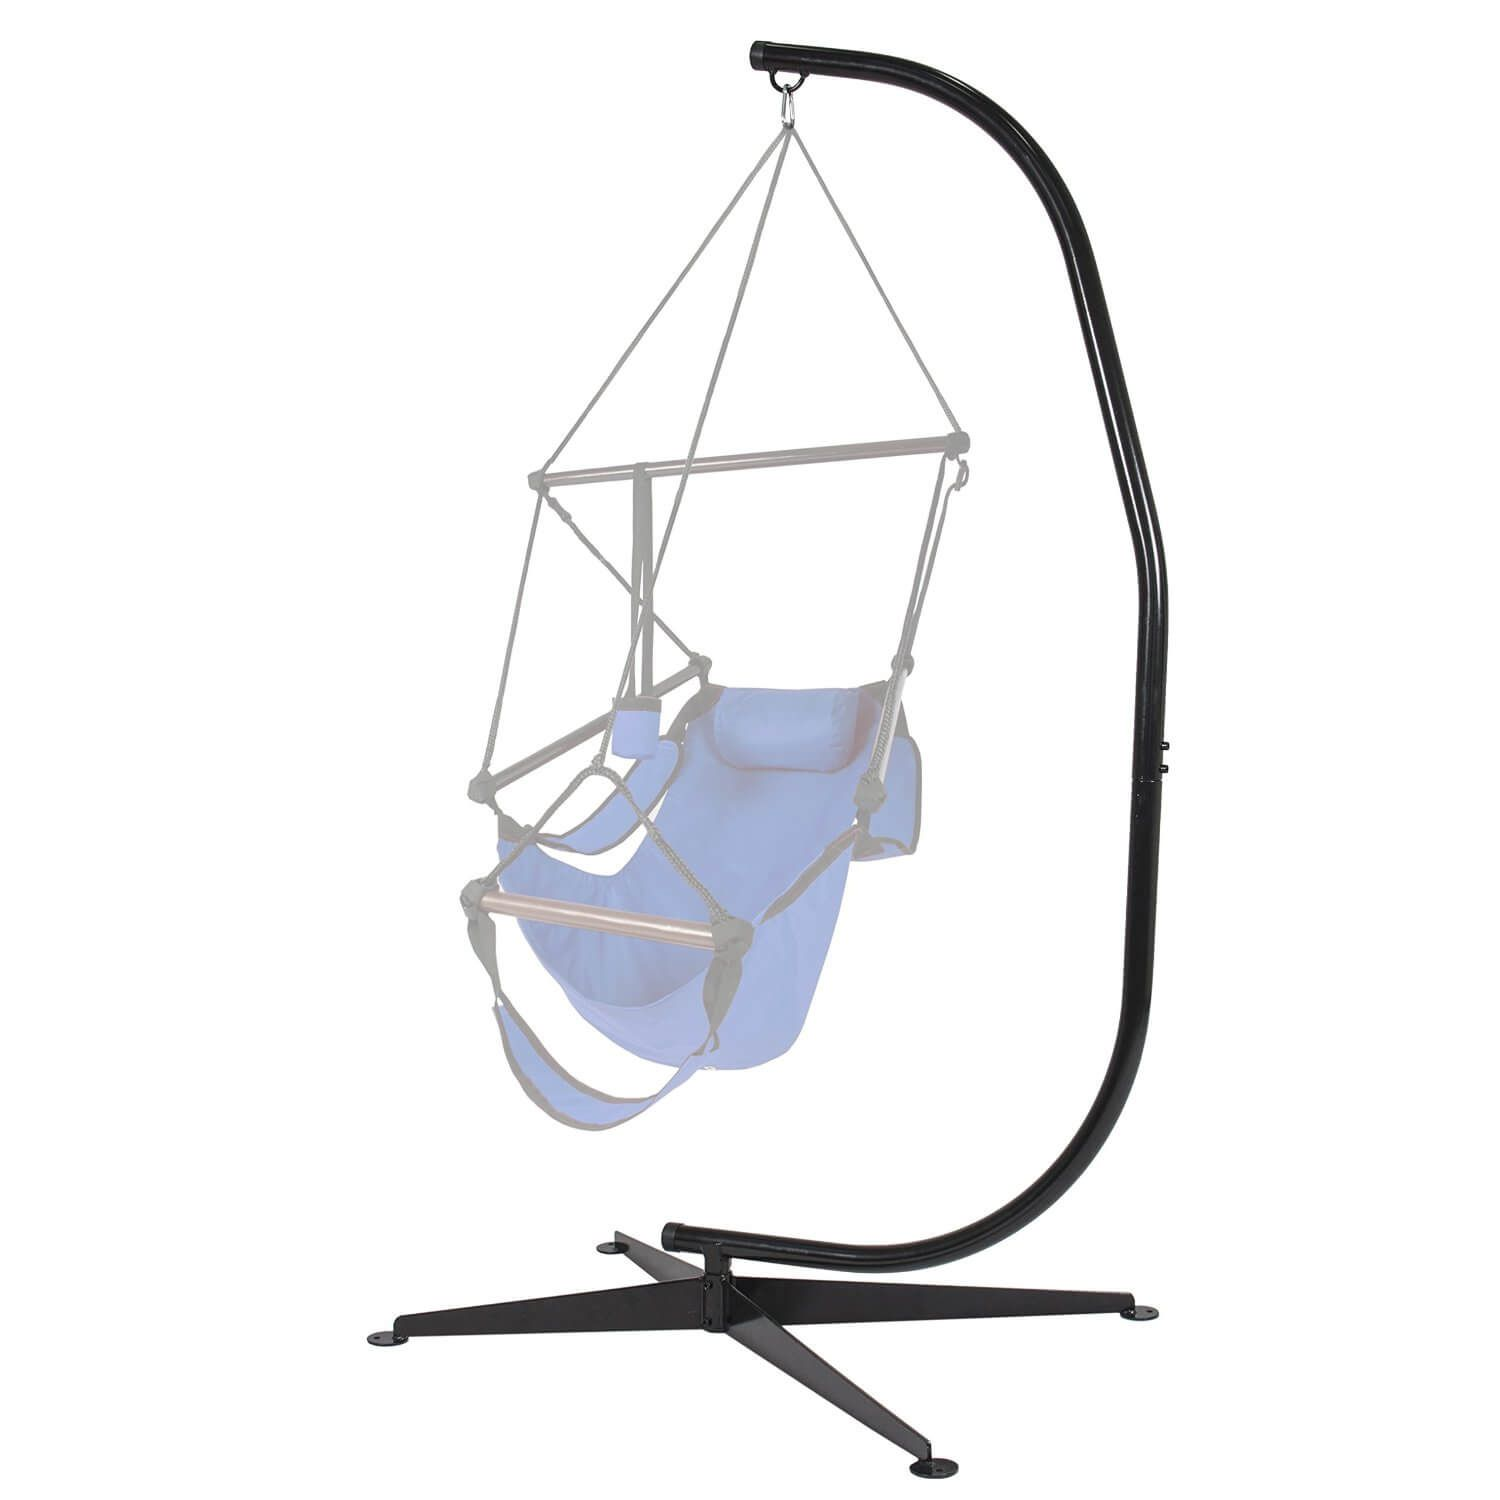 Best Hammock Chair Stand Reviews- Our Top 5 Picks - Pro Hammocks ...